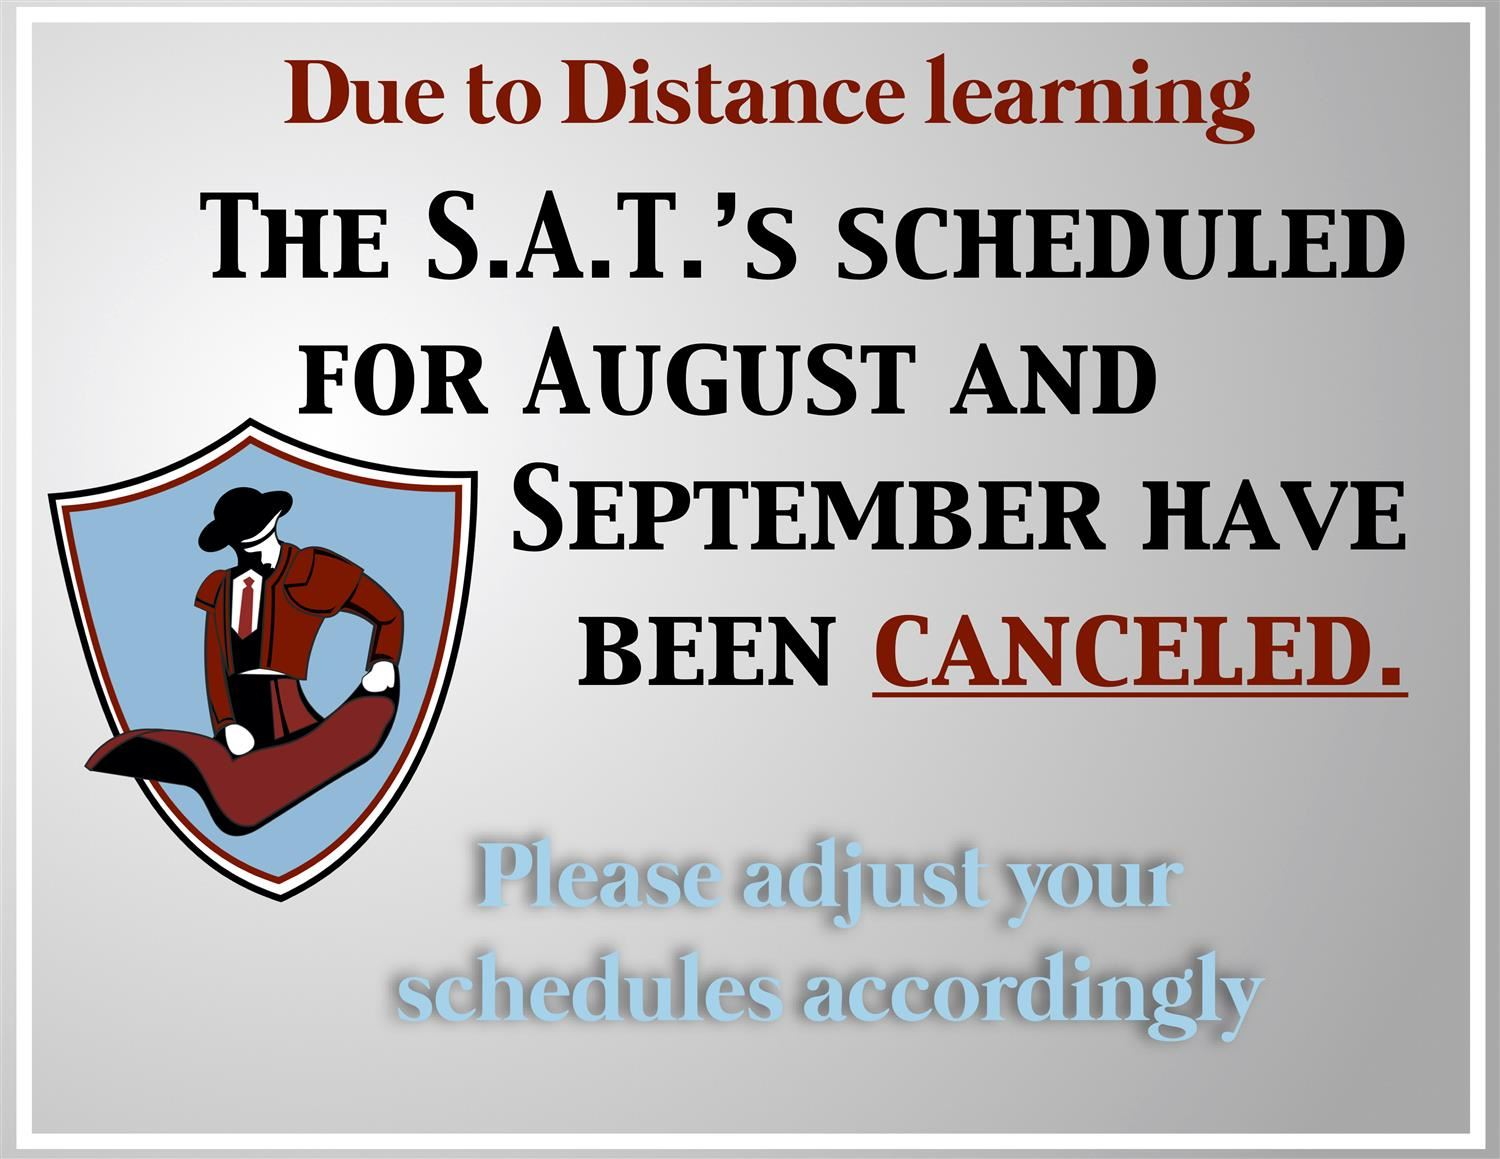 SAT's canceled